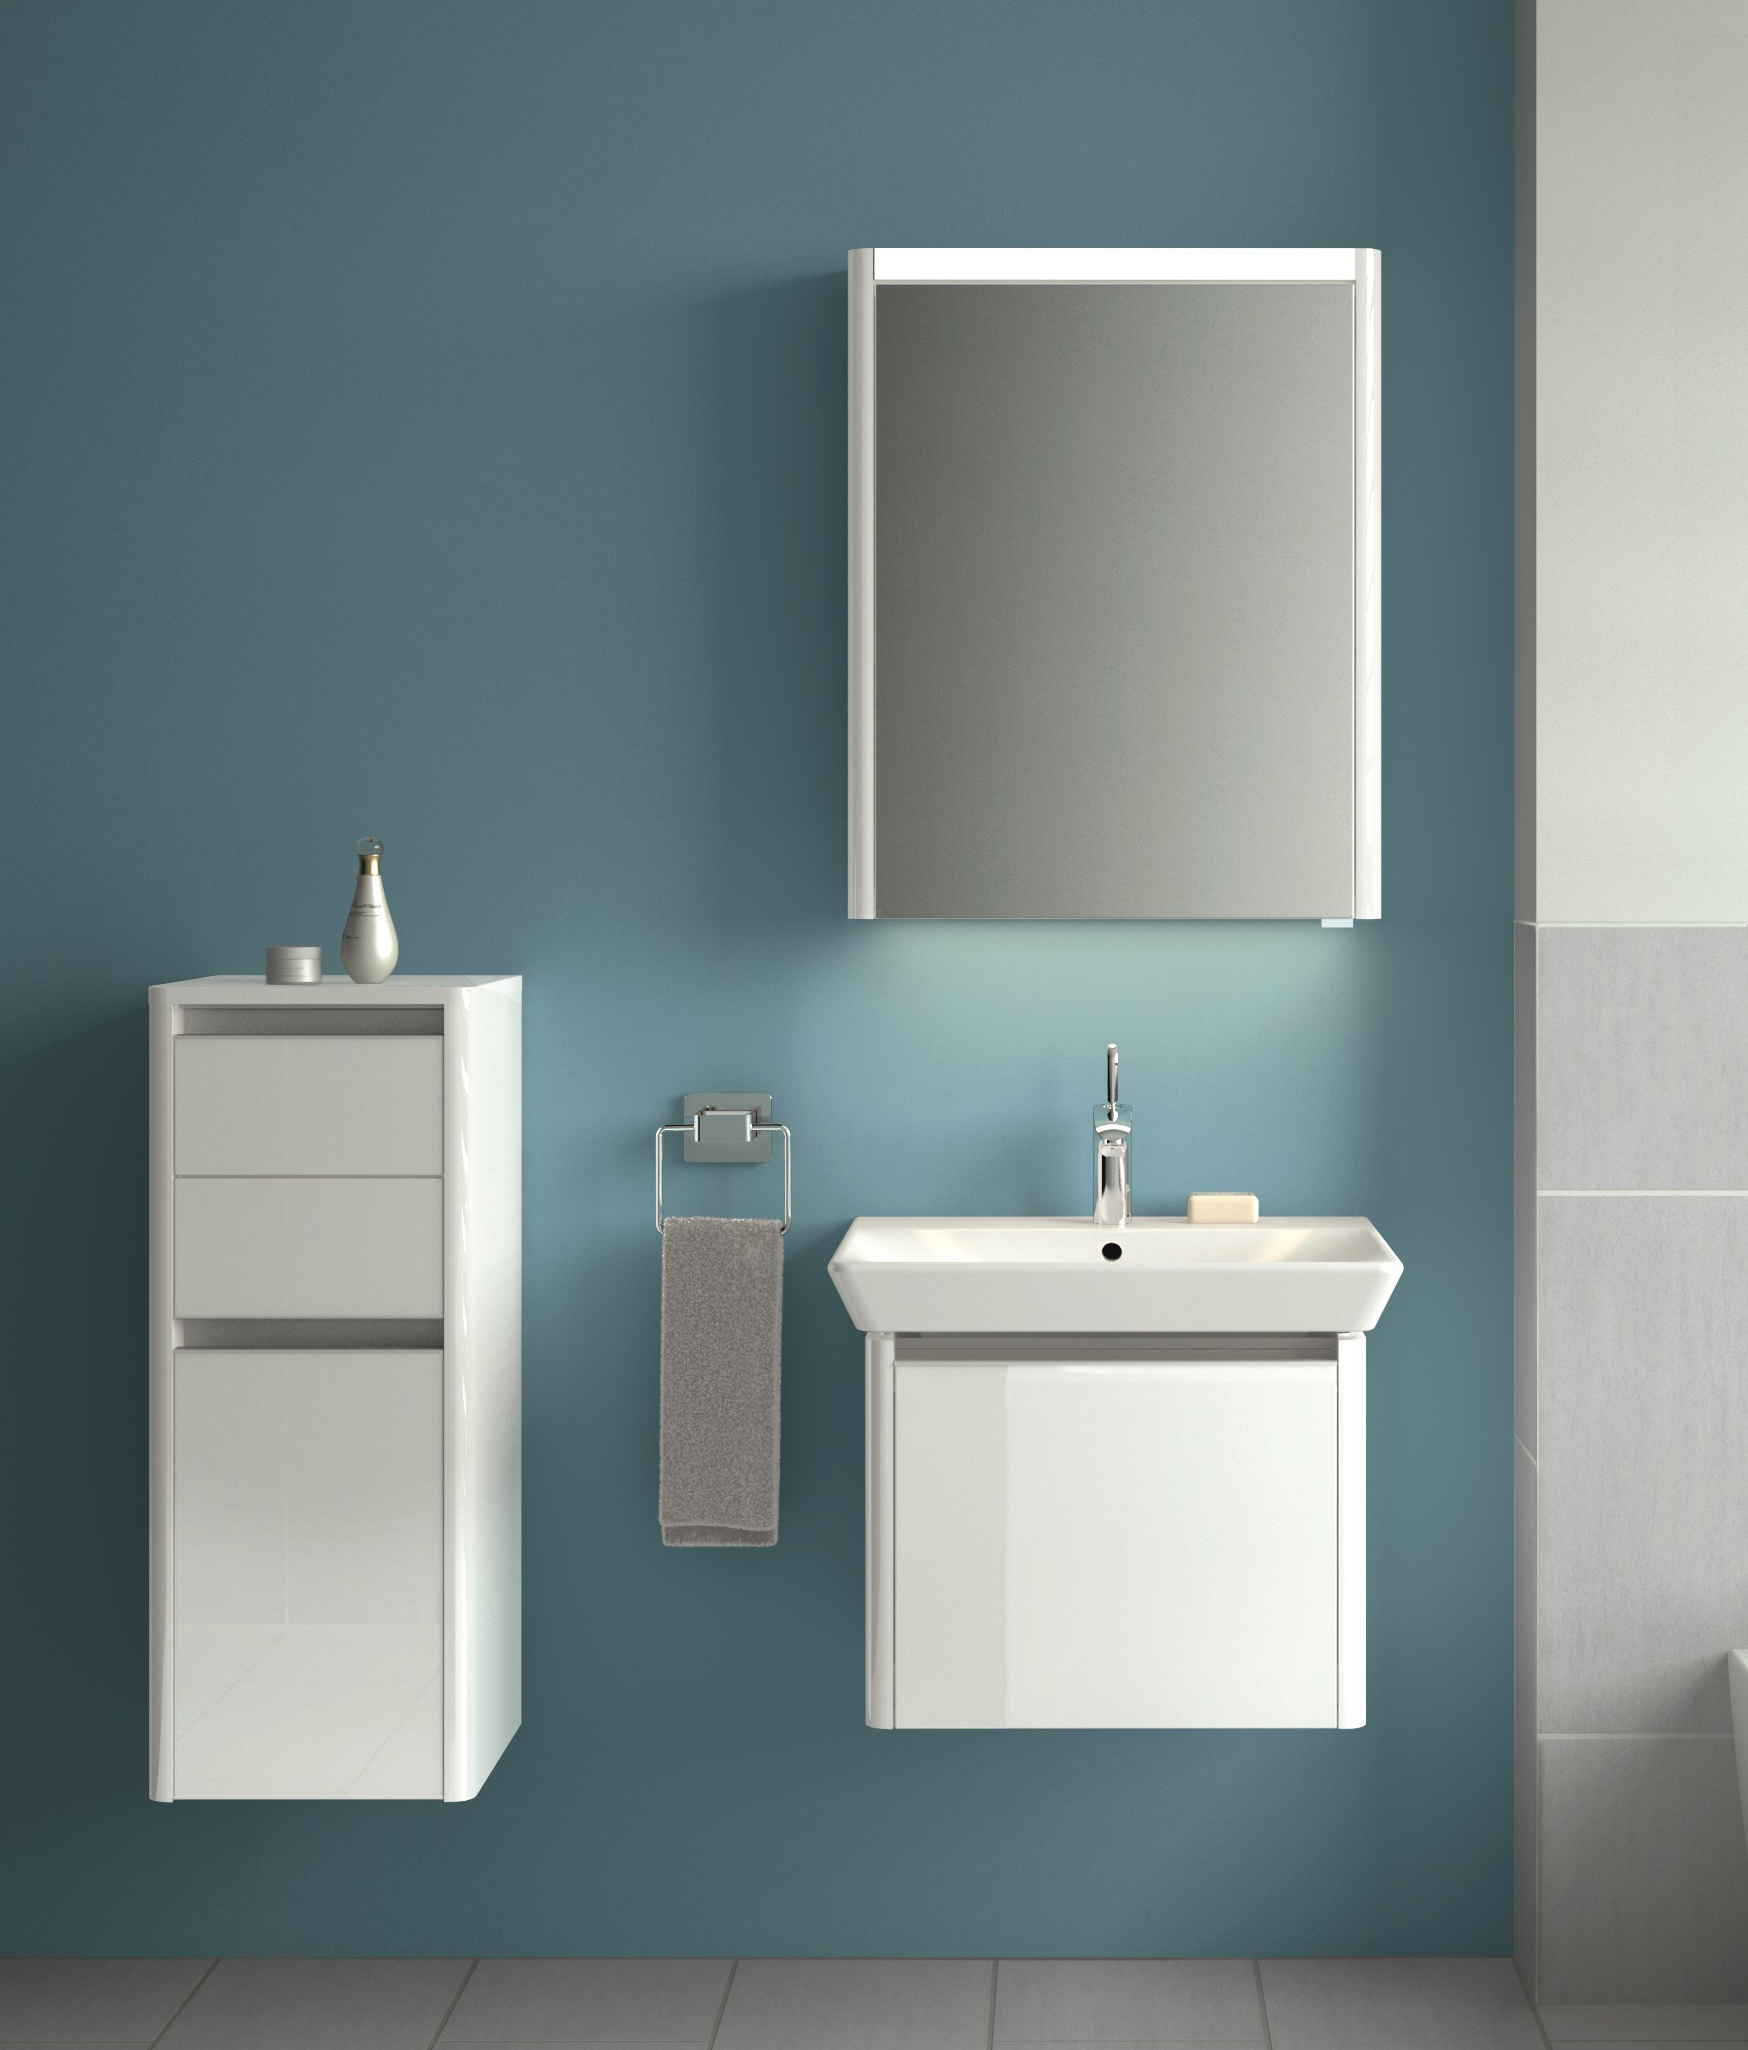 Discussing wall hung bathrooms with VitrA